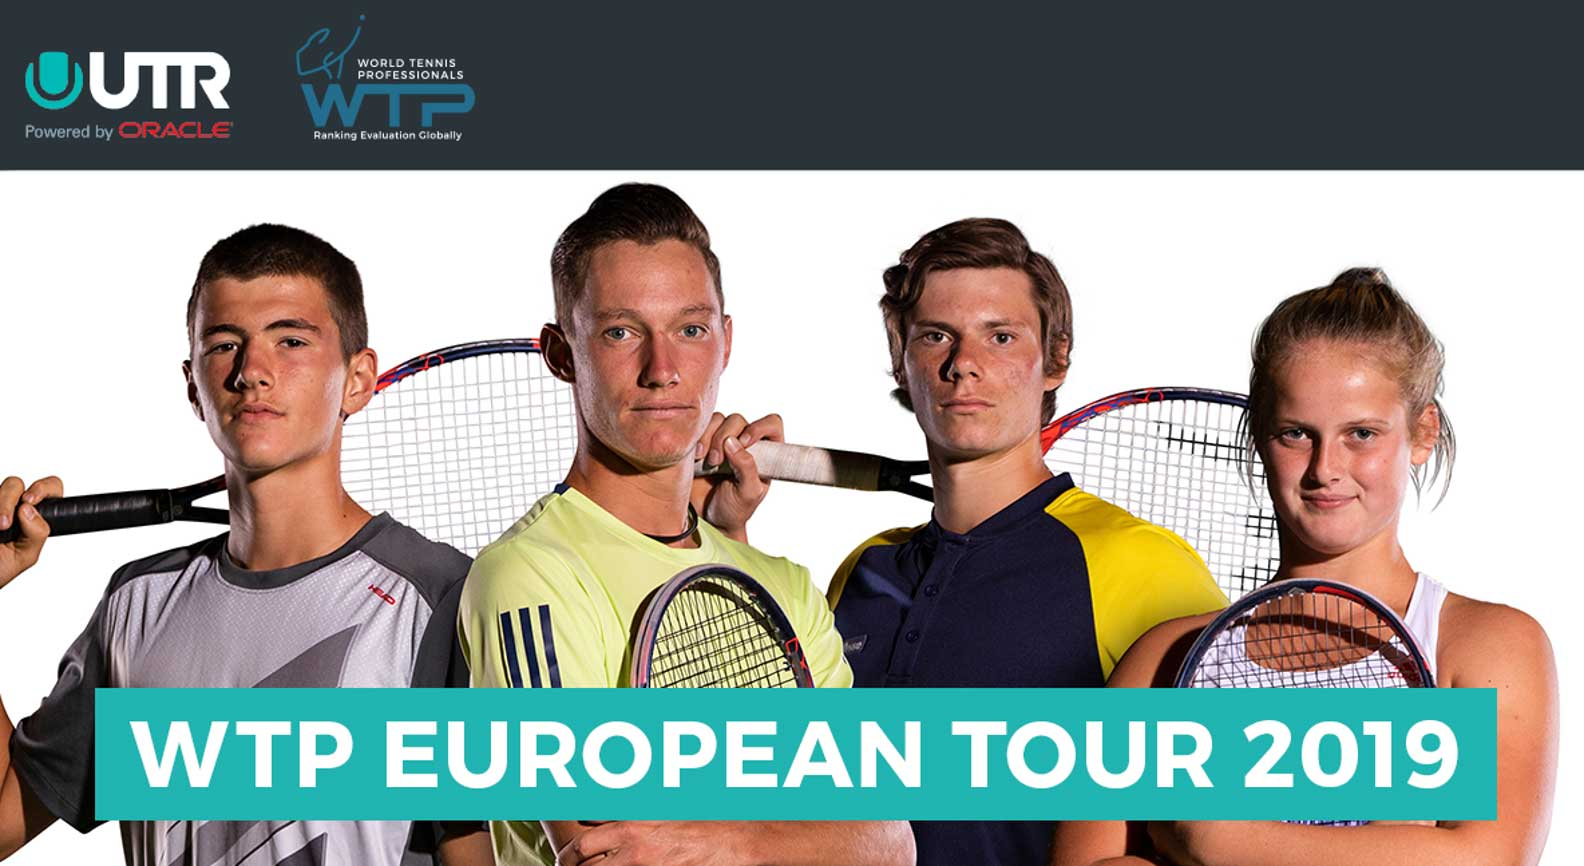 WTP European Tennis Tour